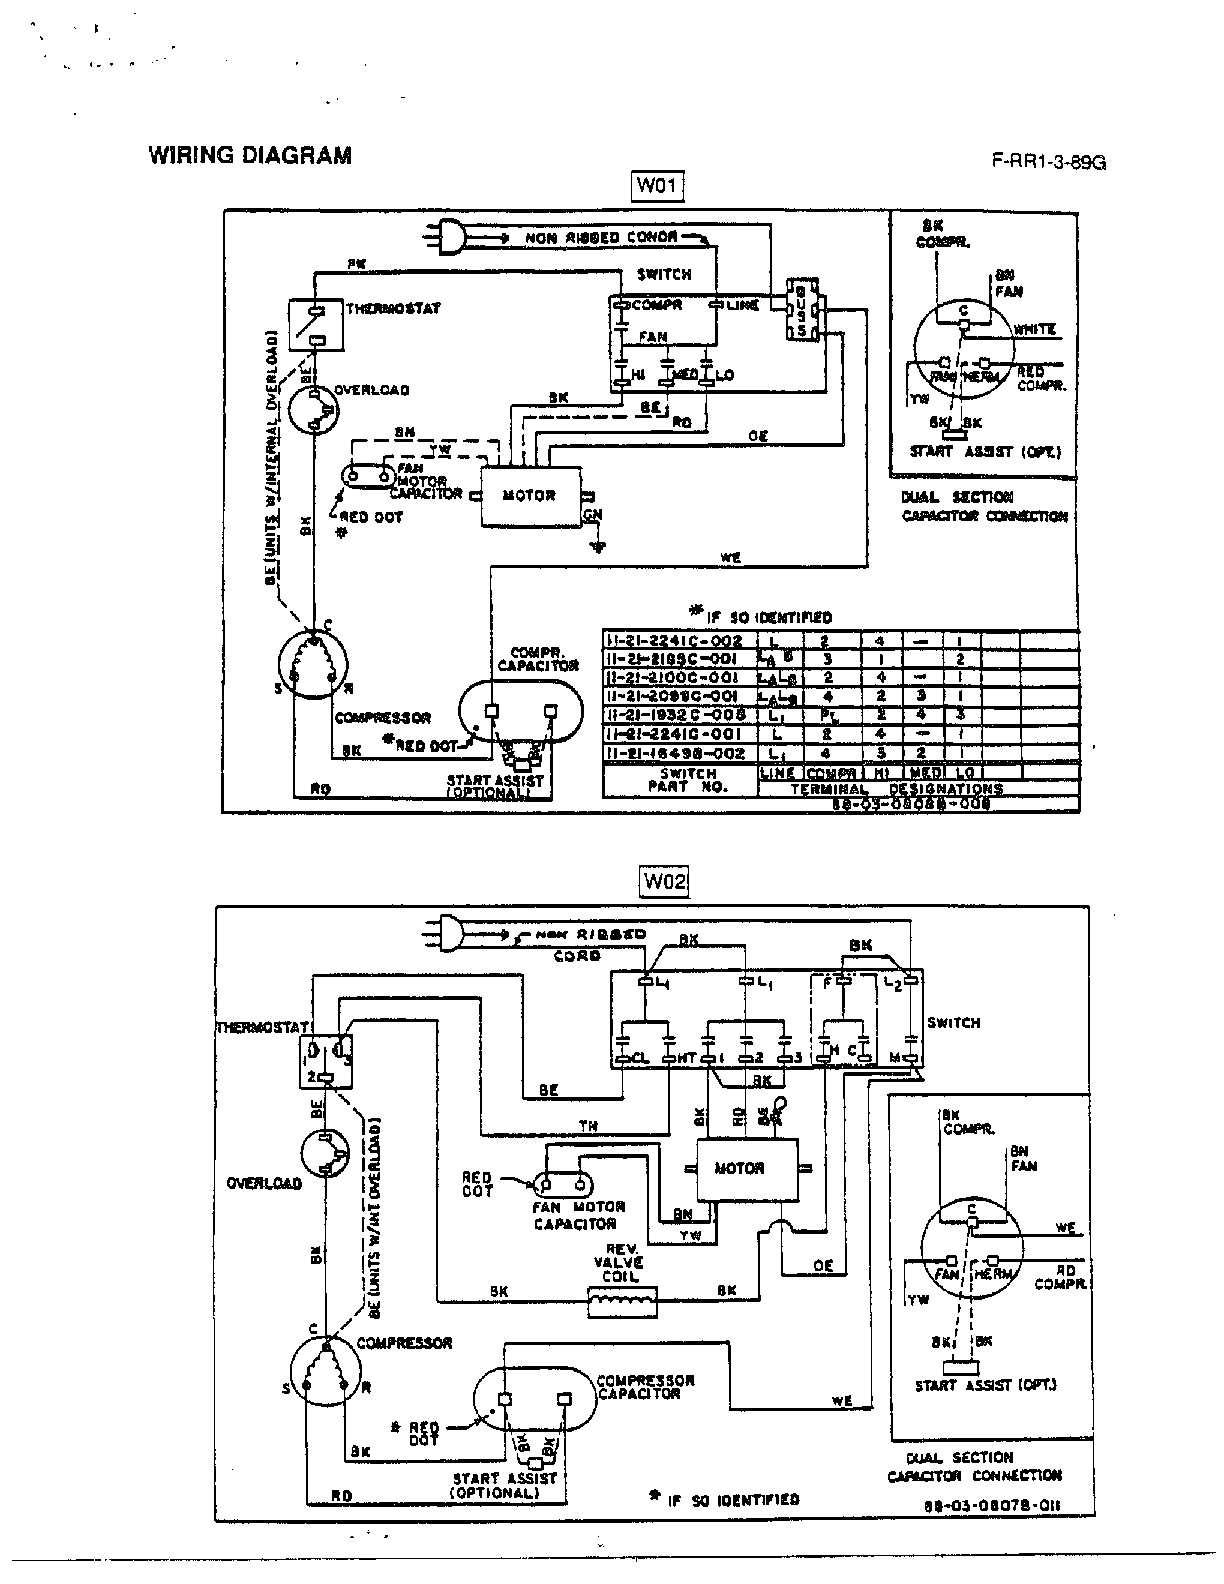 brisk air    air conditioner       wiring       diagram         WIRING       DIAGRAM